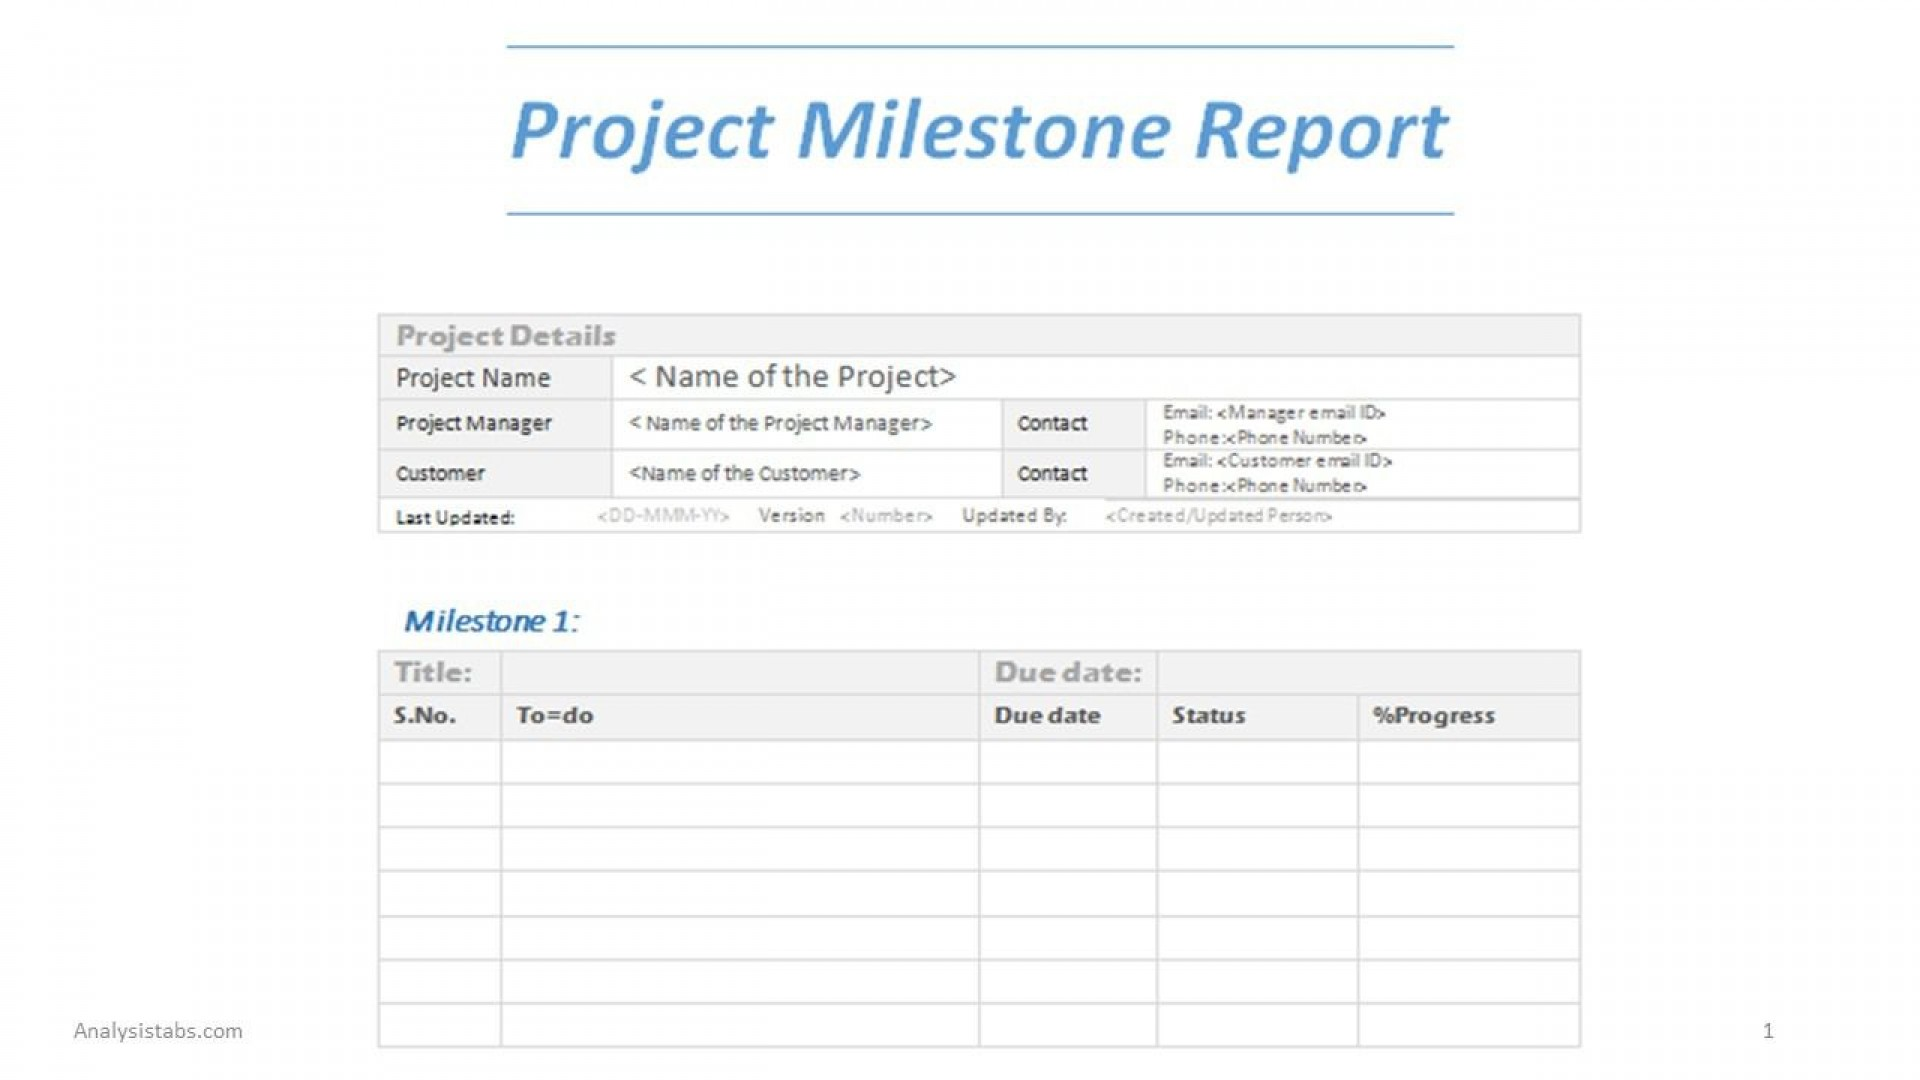 003 Magnificent Project Management Statu Report Template Word Design  Free1920